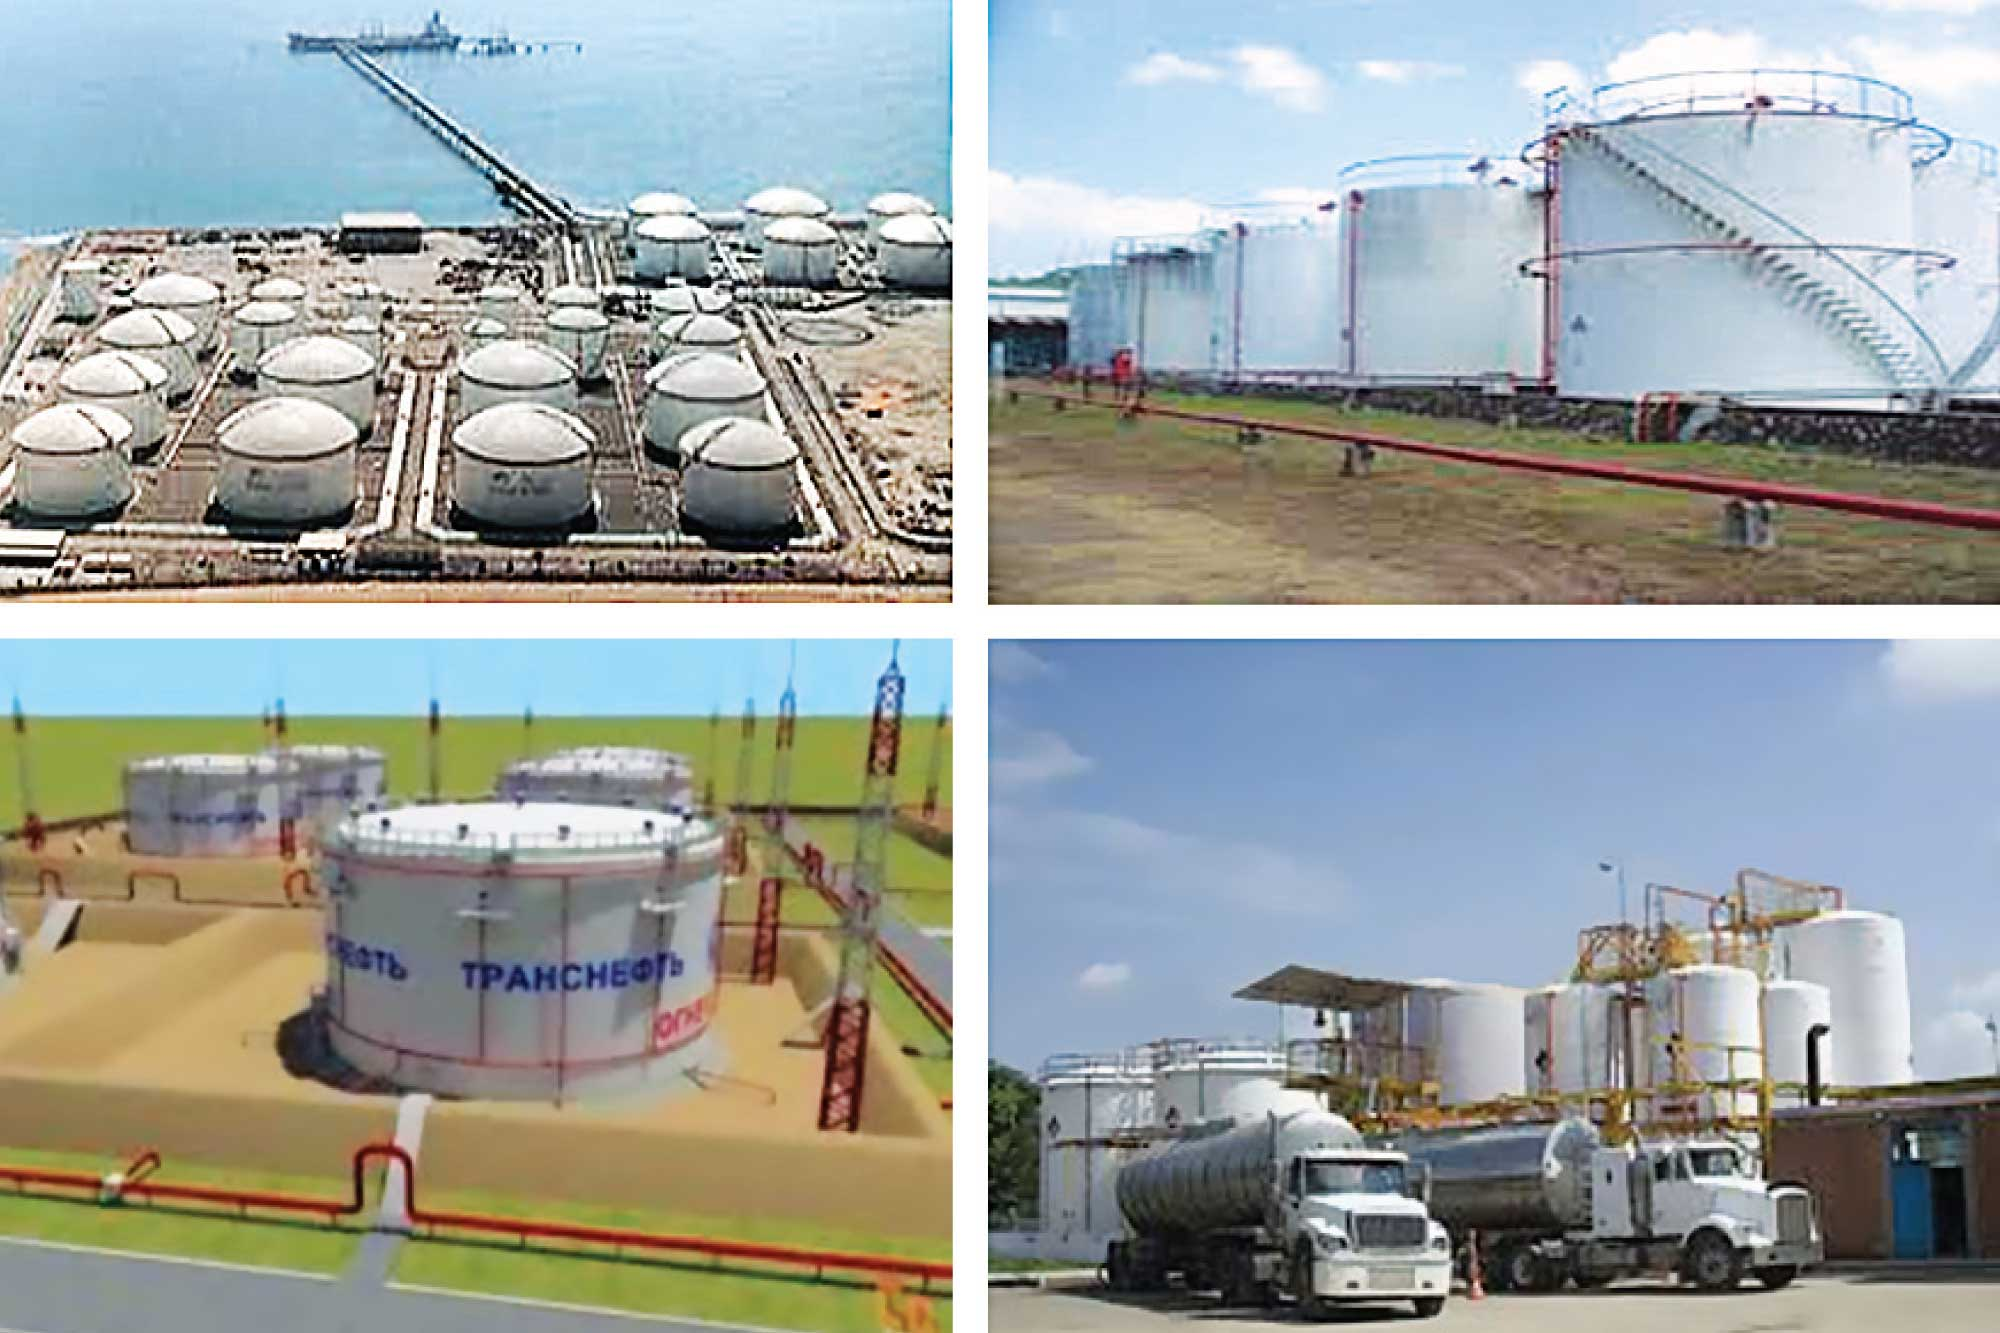 How to deal with safety aspects of tanks and tank farms